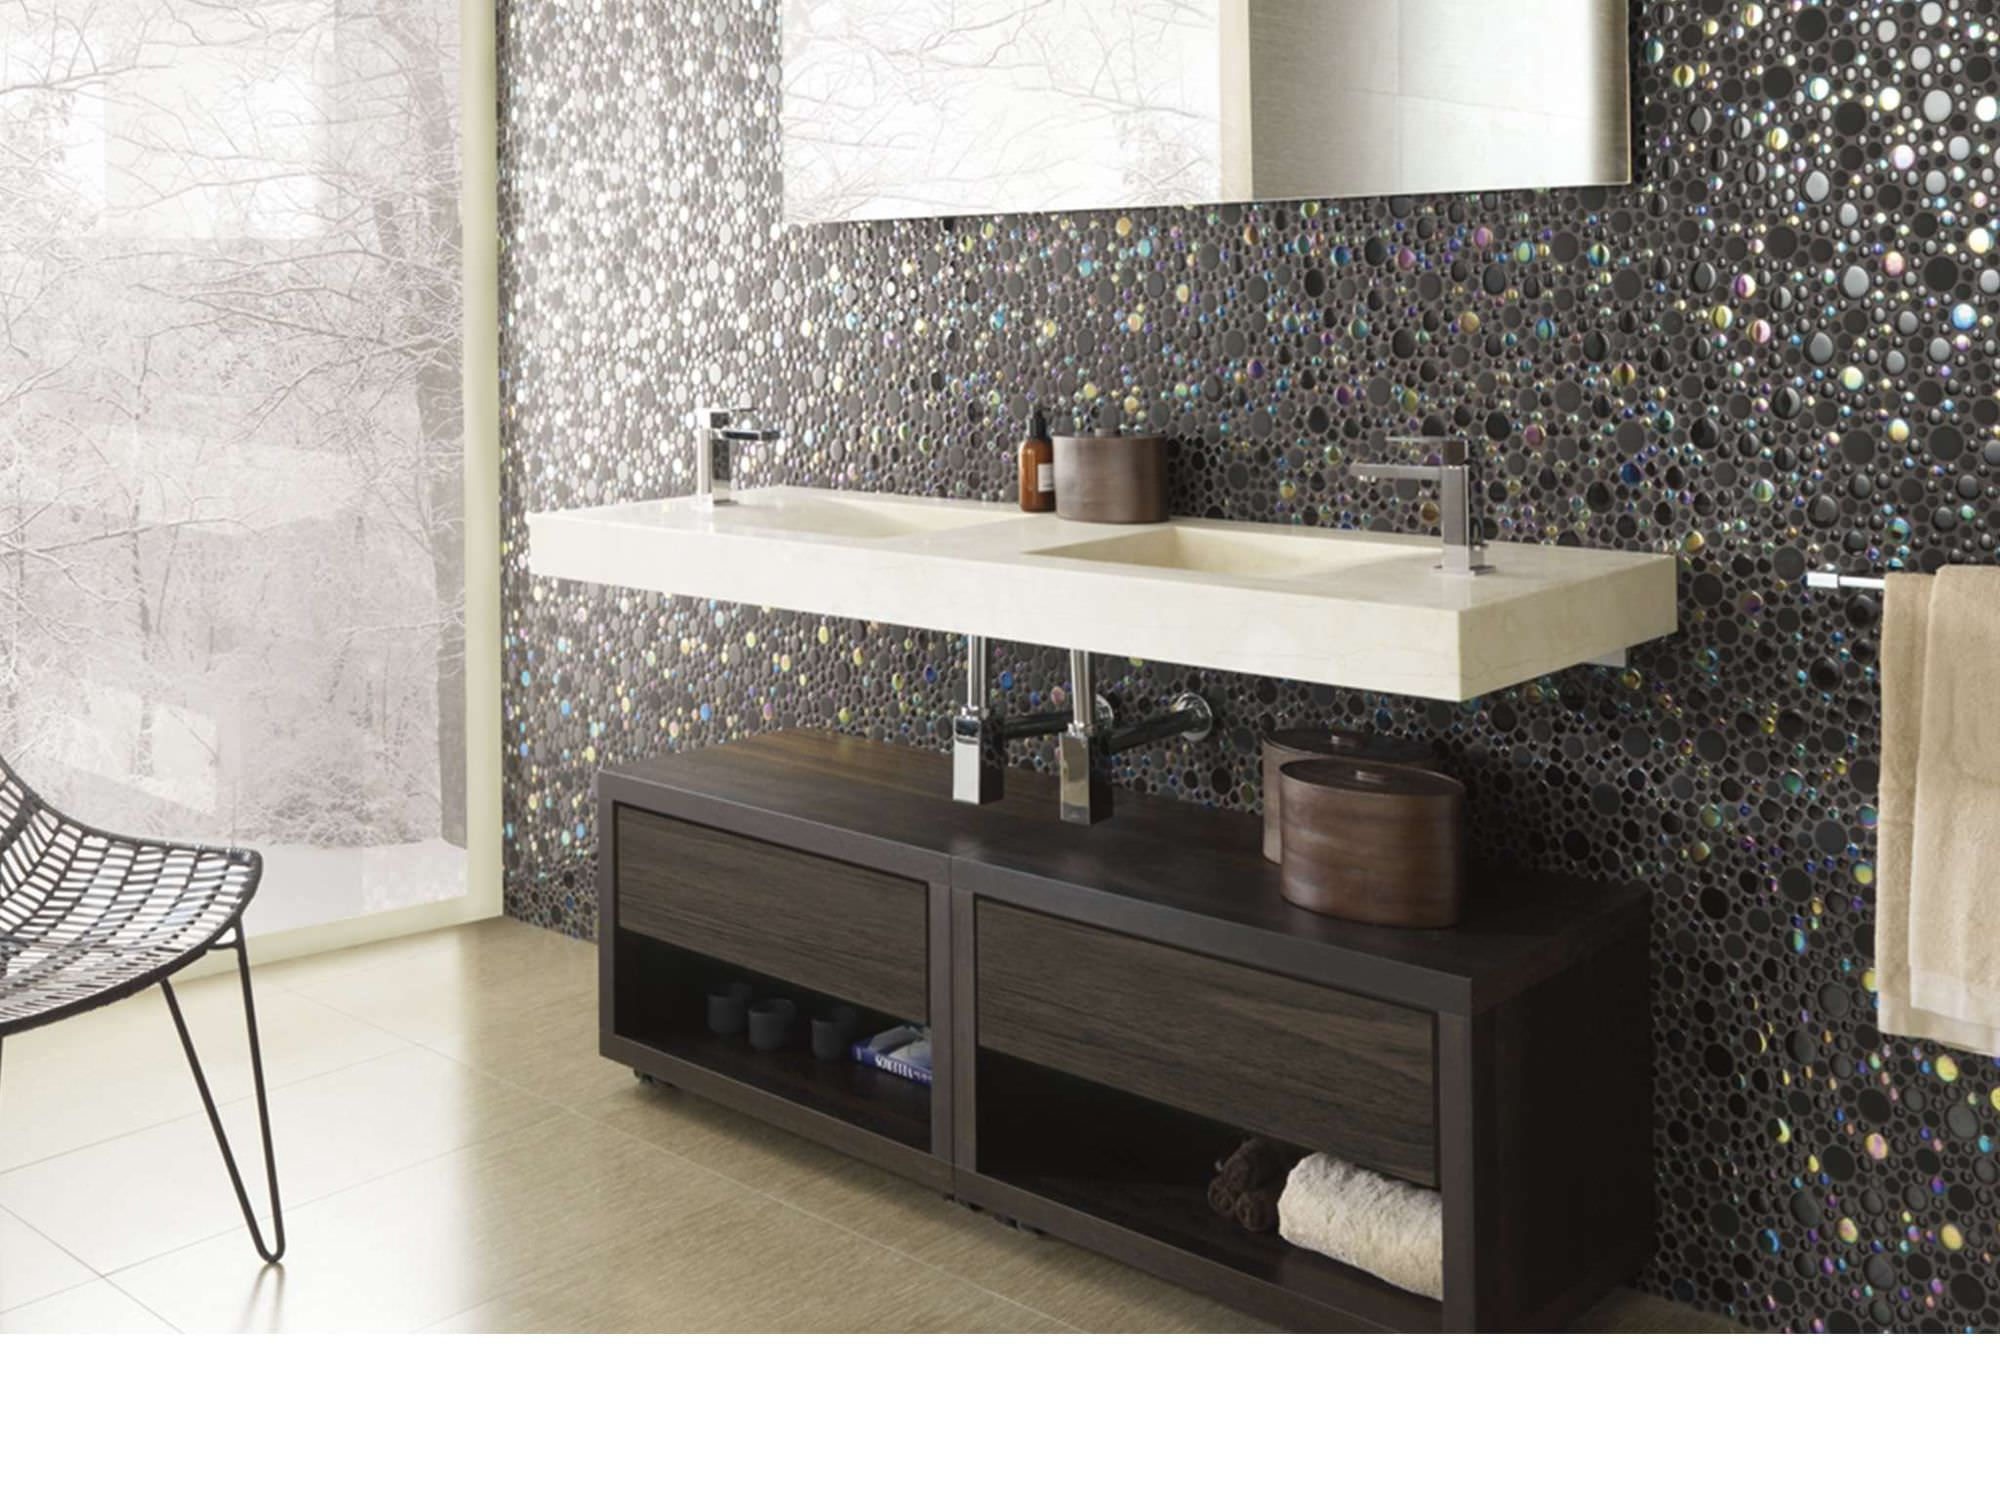 Mueble con ruedas de baño - BOSTON - L\'ANTIC COLONIAL – PORCELANOSA ...